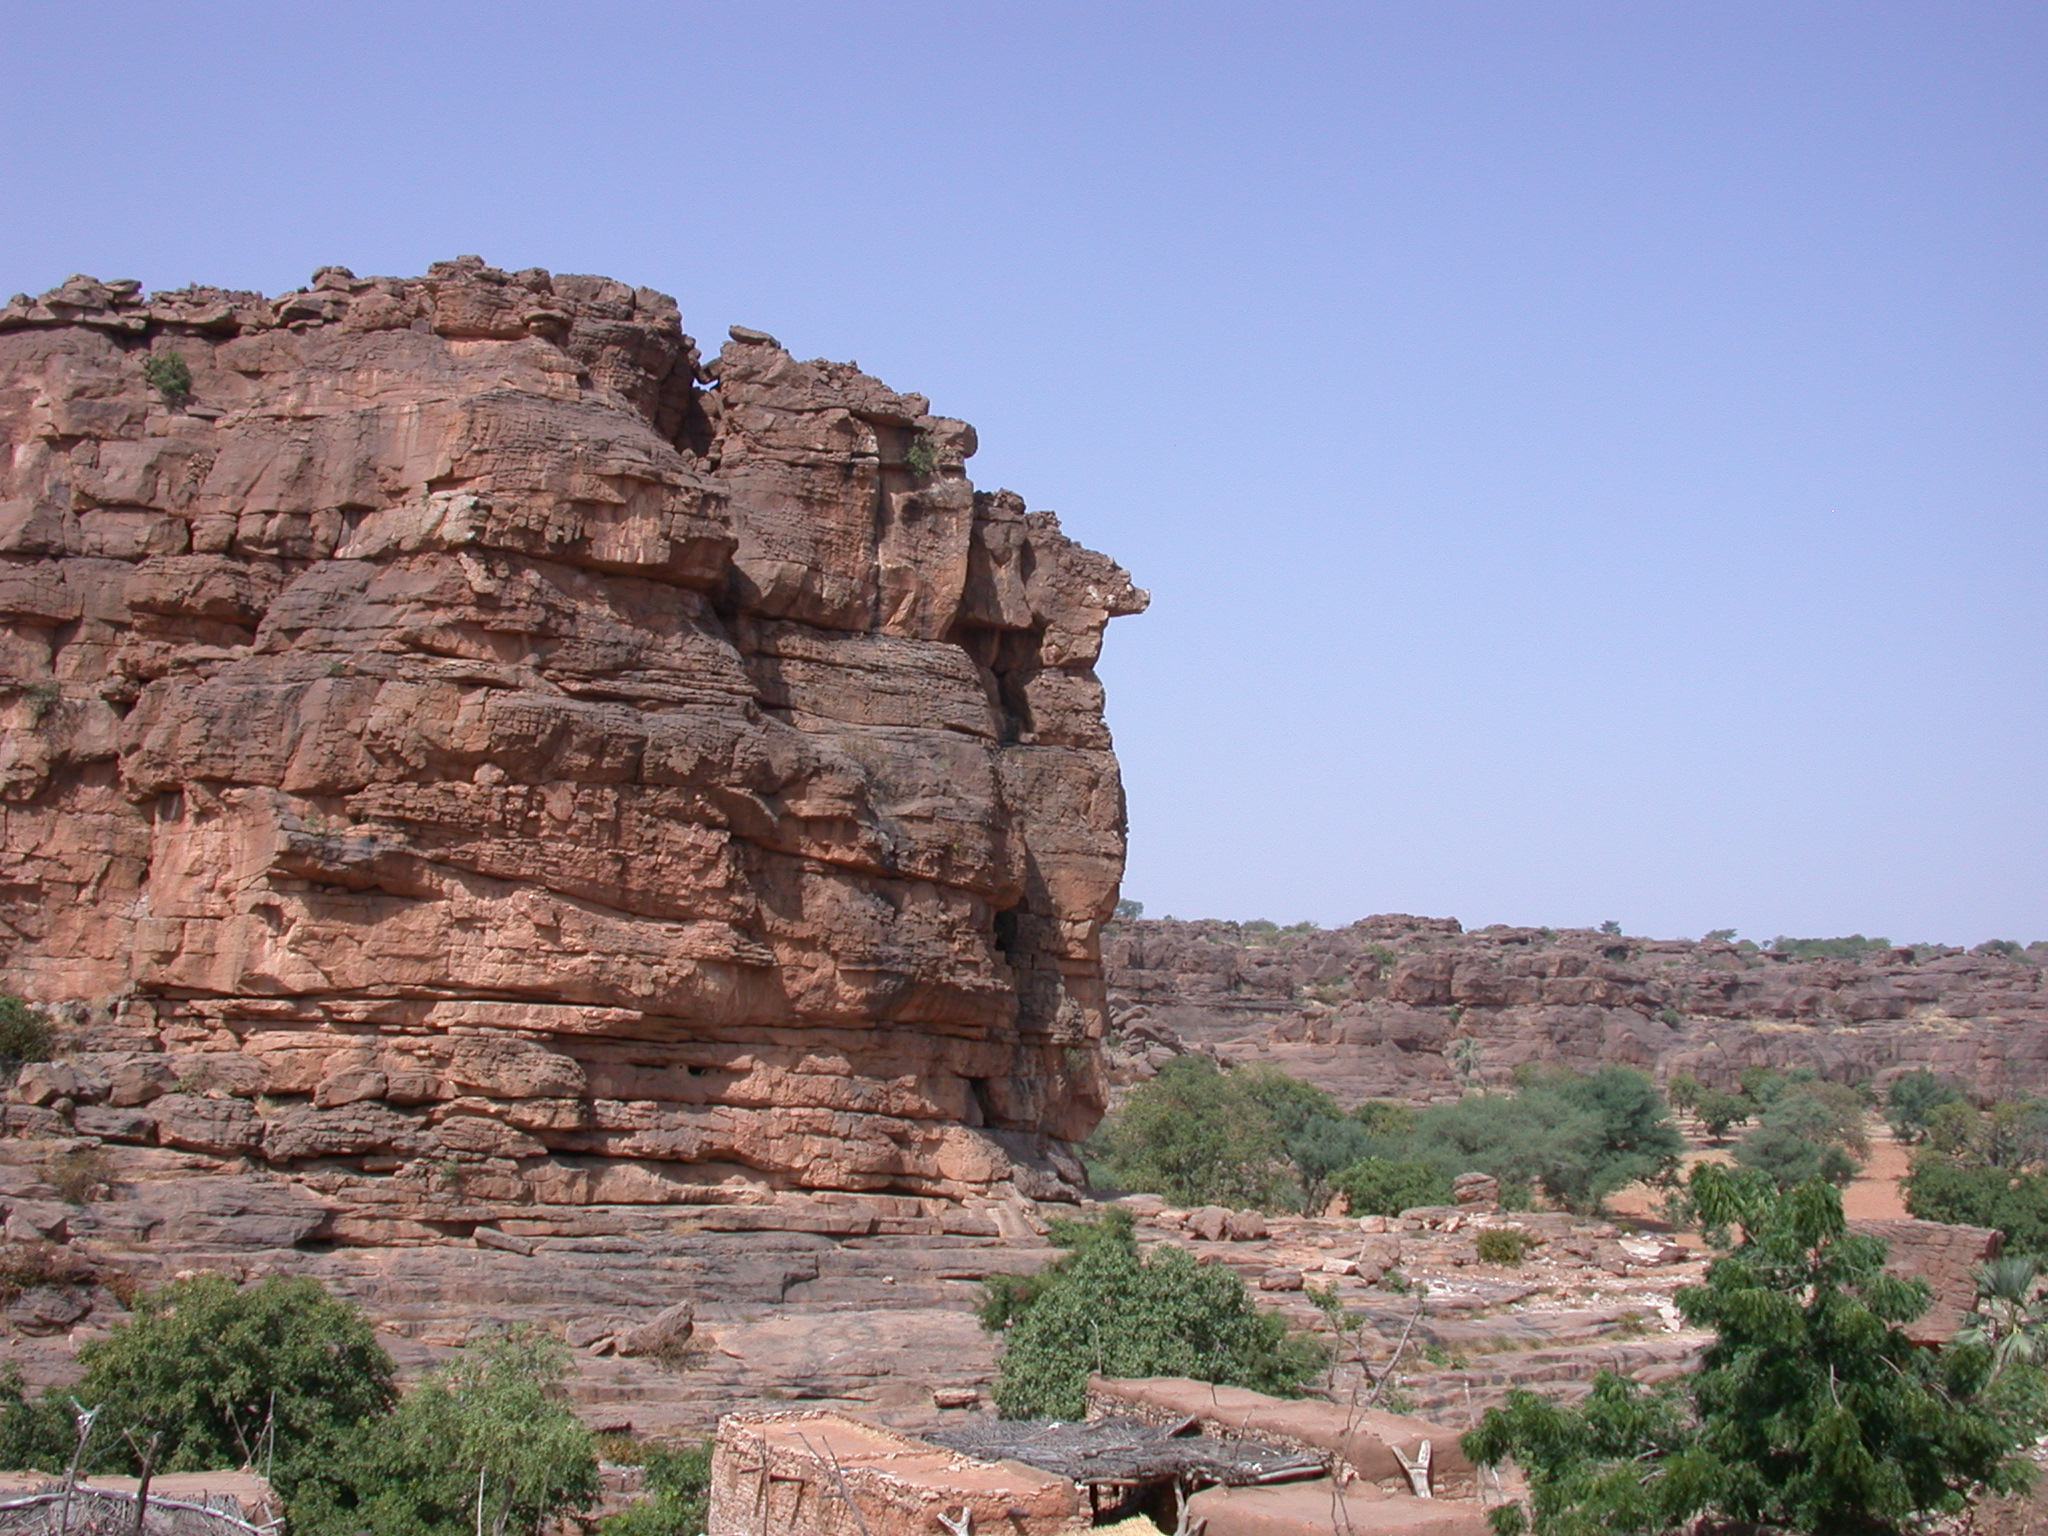 View of Summit of Falaise Escarpment, Begnetmoto Village, Dogon Country, Mali